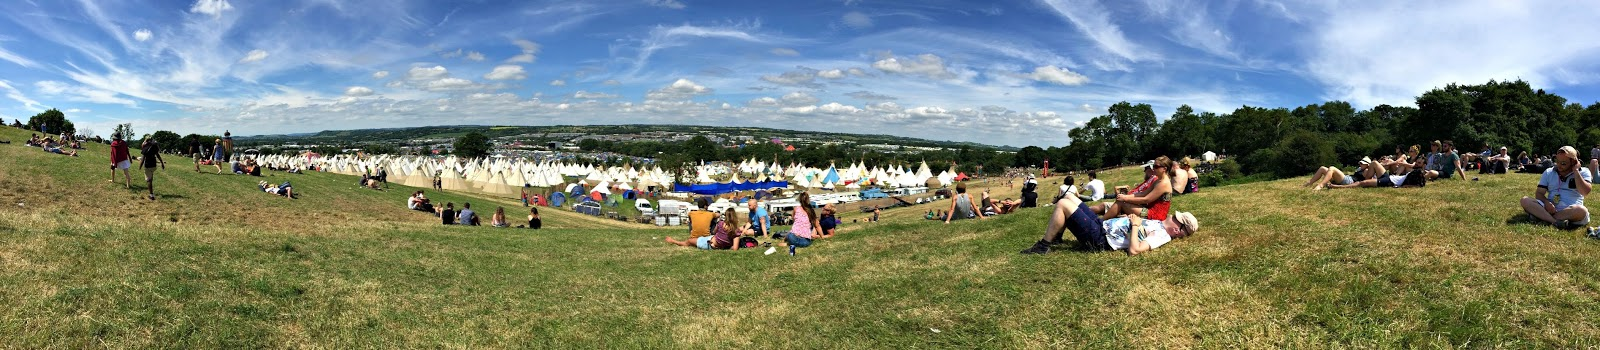 Glastonbury panorama